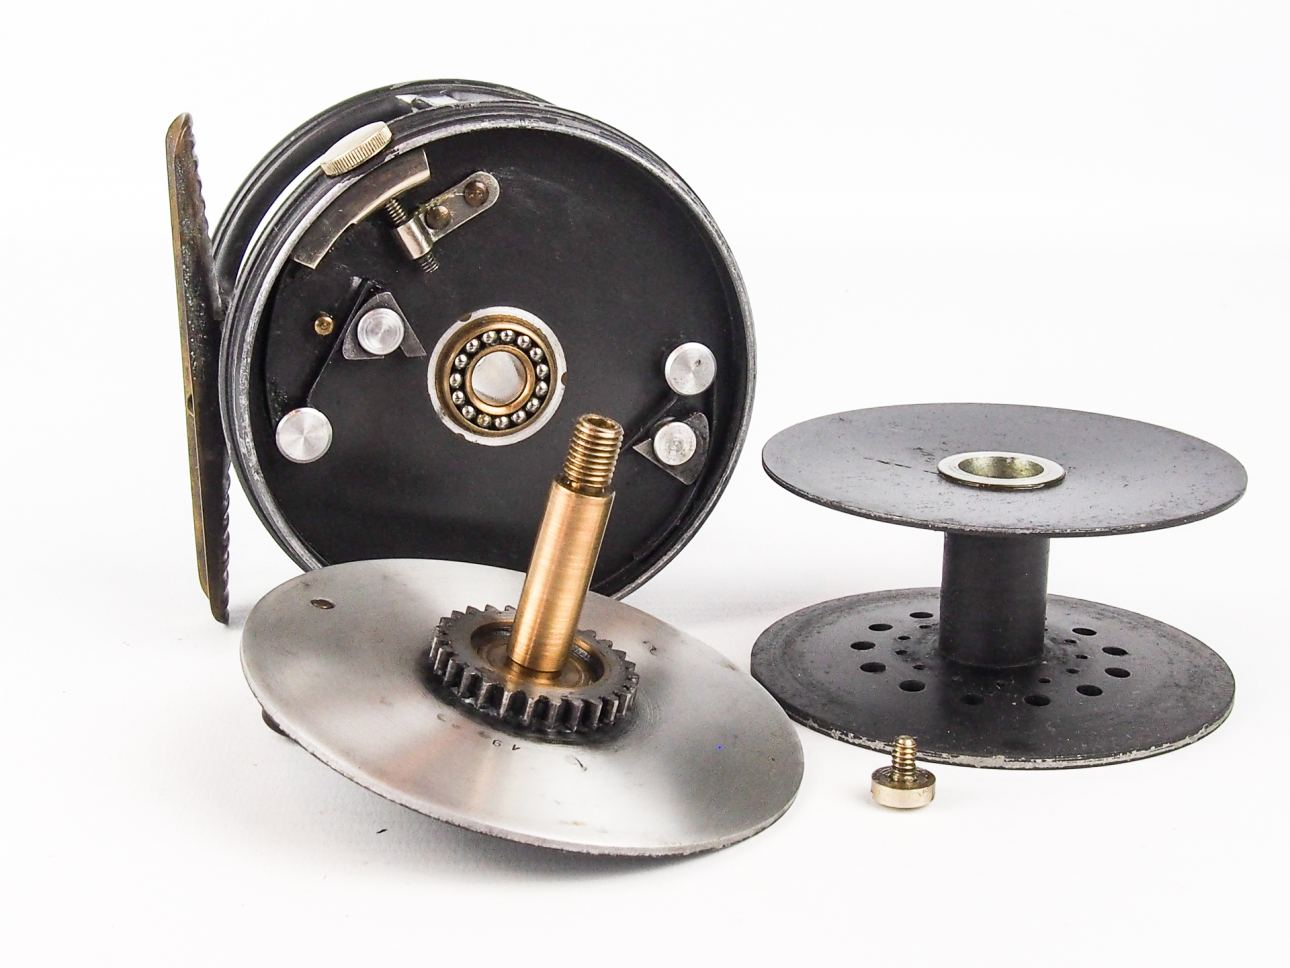 Hardy 3 3 4 perfect salmon fly reel vintage fishing tackle for Antique fishing reels price guide